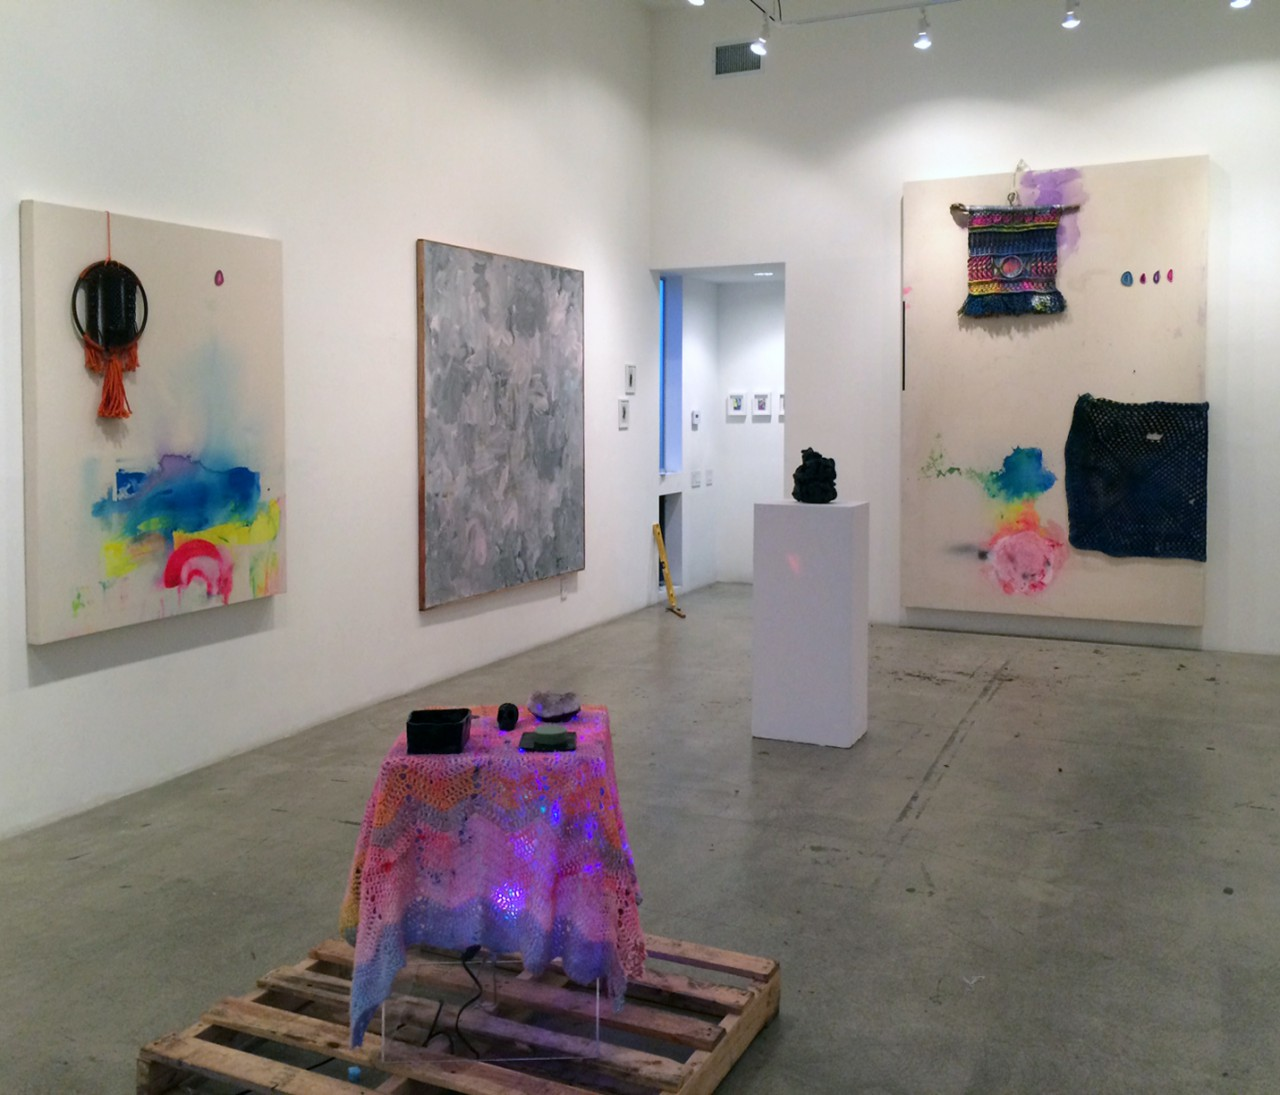 Exhibition view | Tigeraugen | Jaus Gallery | Los Angeles | May-June 2016